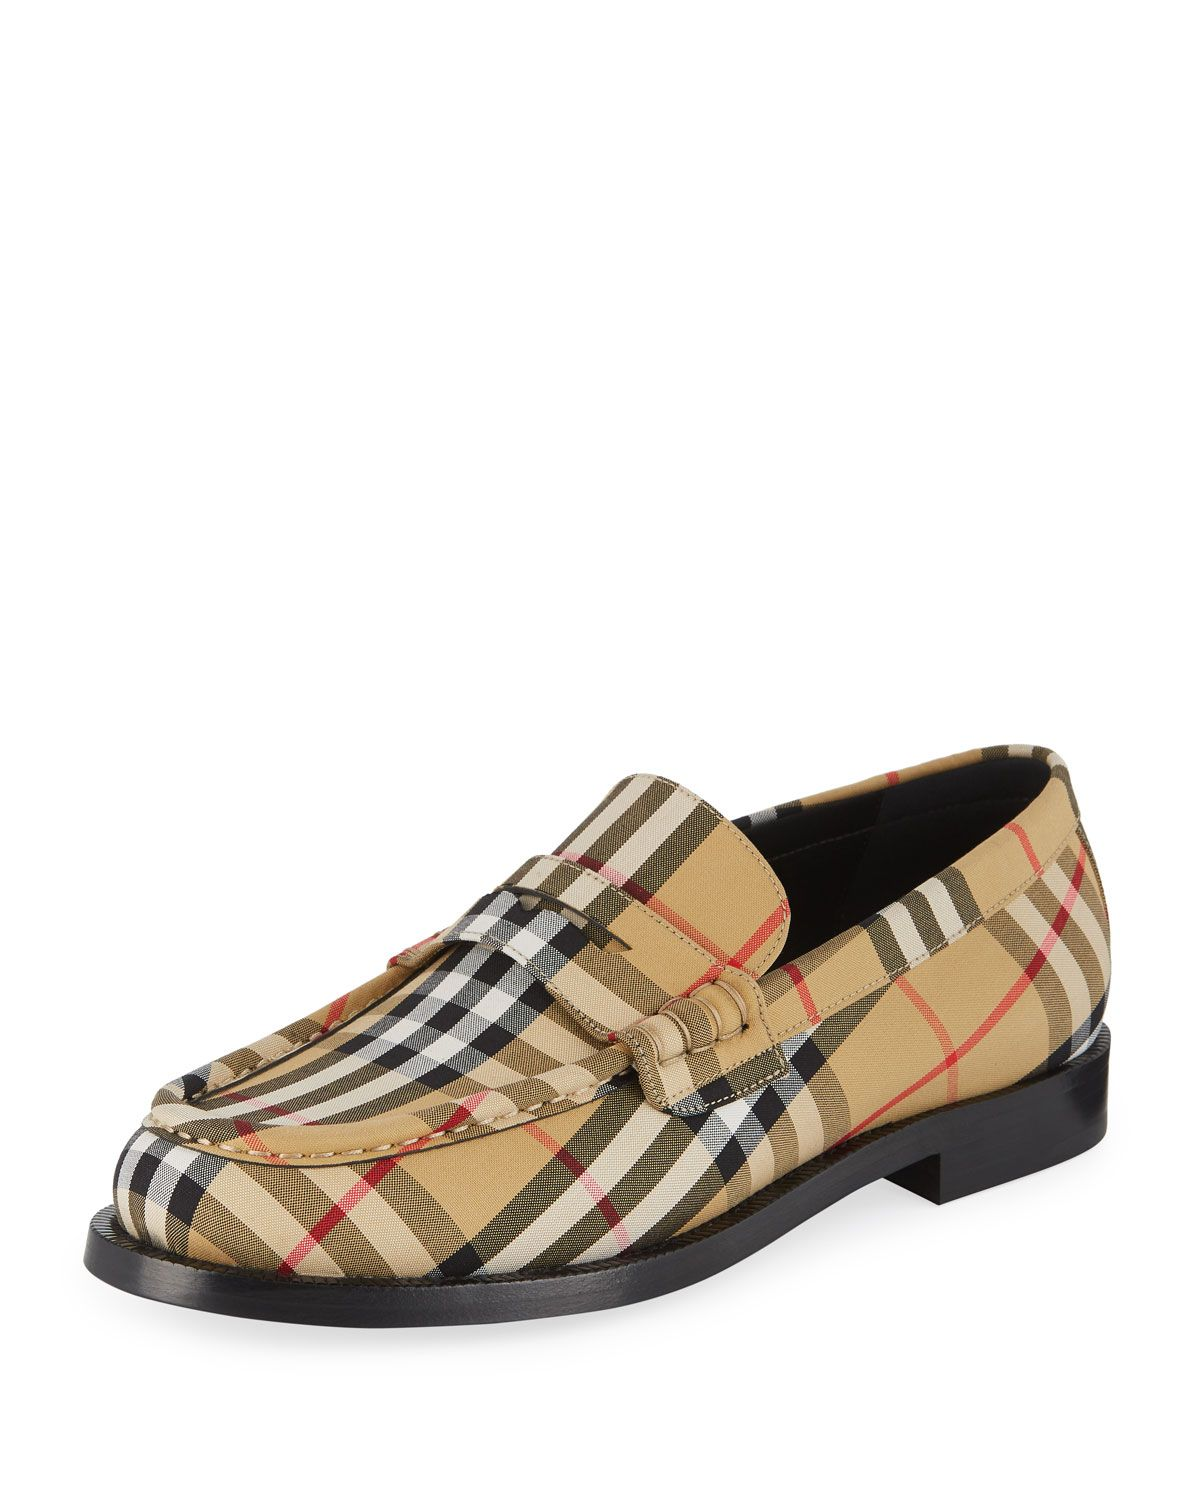 08234719aaa6 Burberry Men s Moore Signature Check Penny Loafer